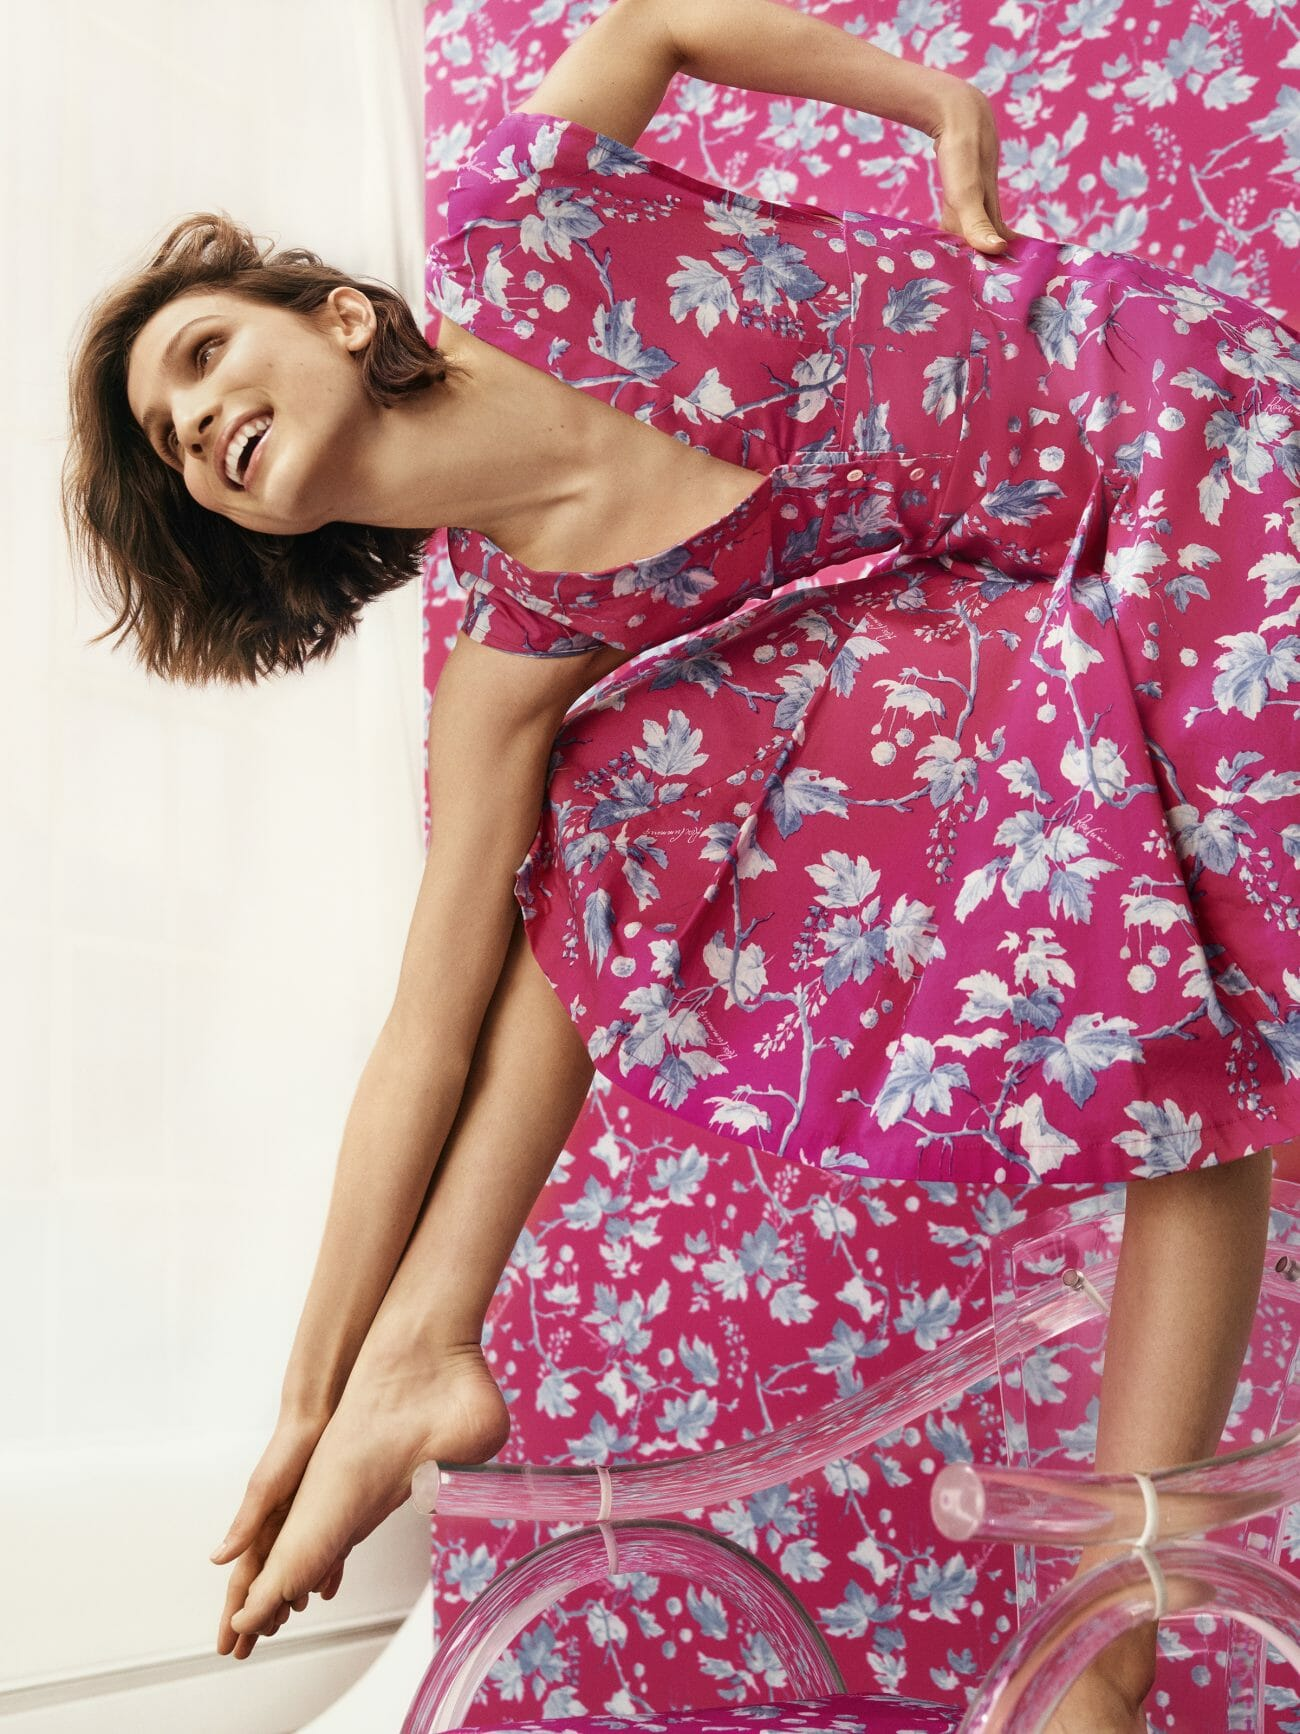 carolina herrera new york model wearing pink flower dress